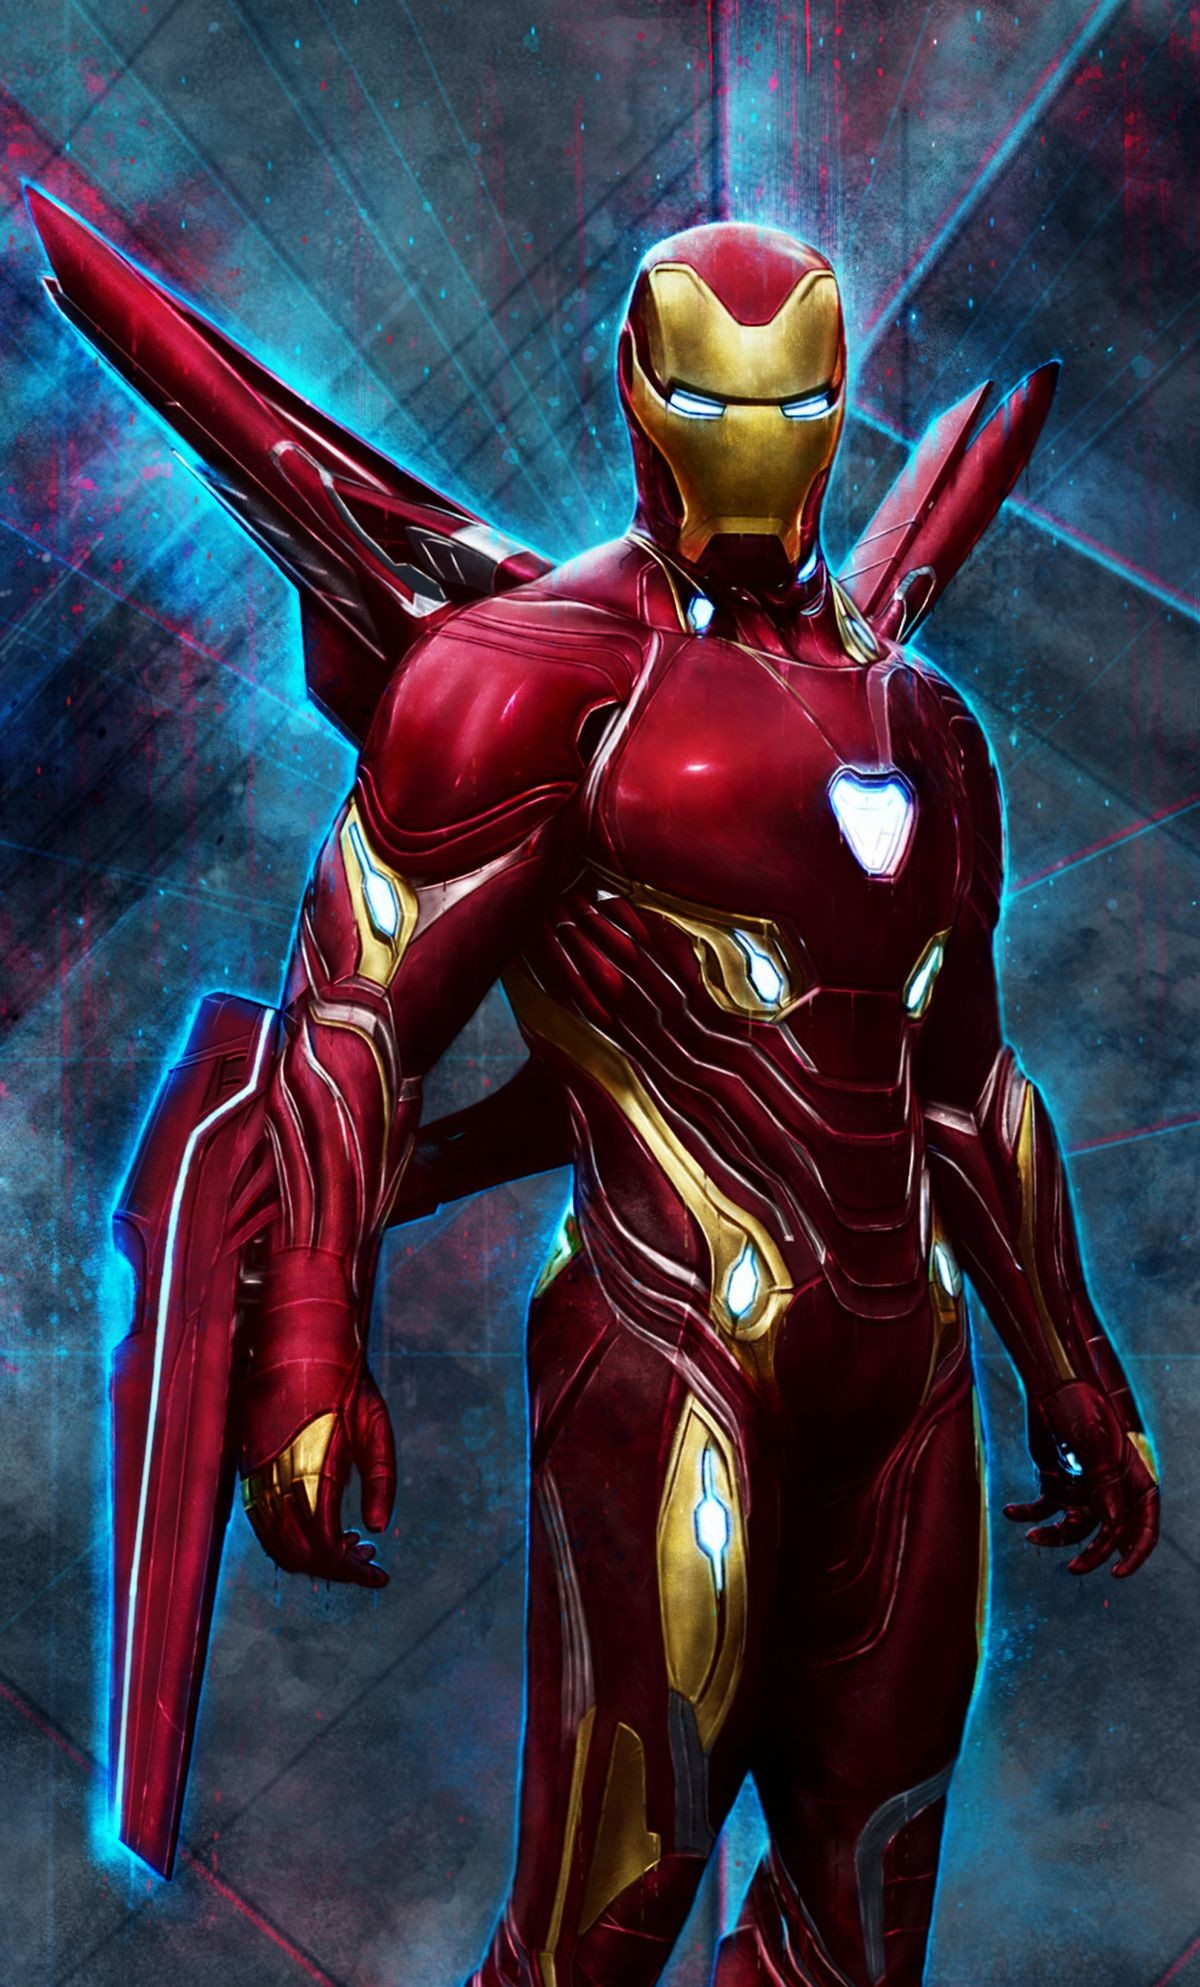 20 Iron Man 2019 Wallpapers On Wallpapersafari